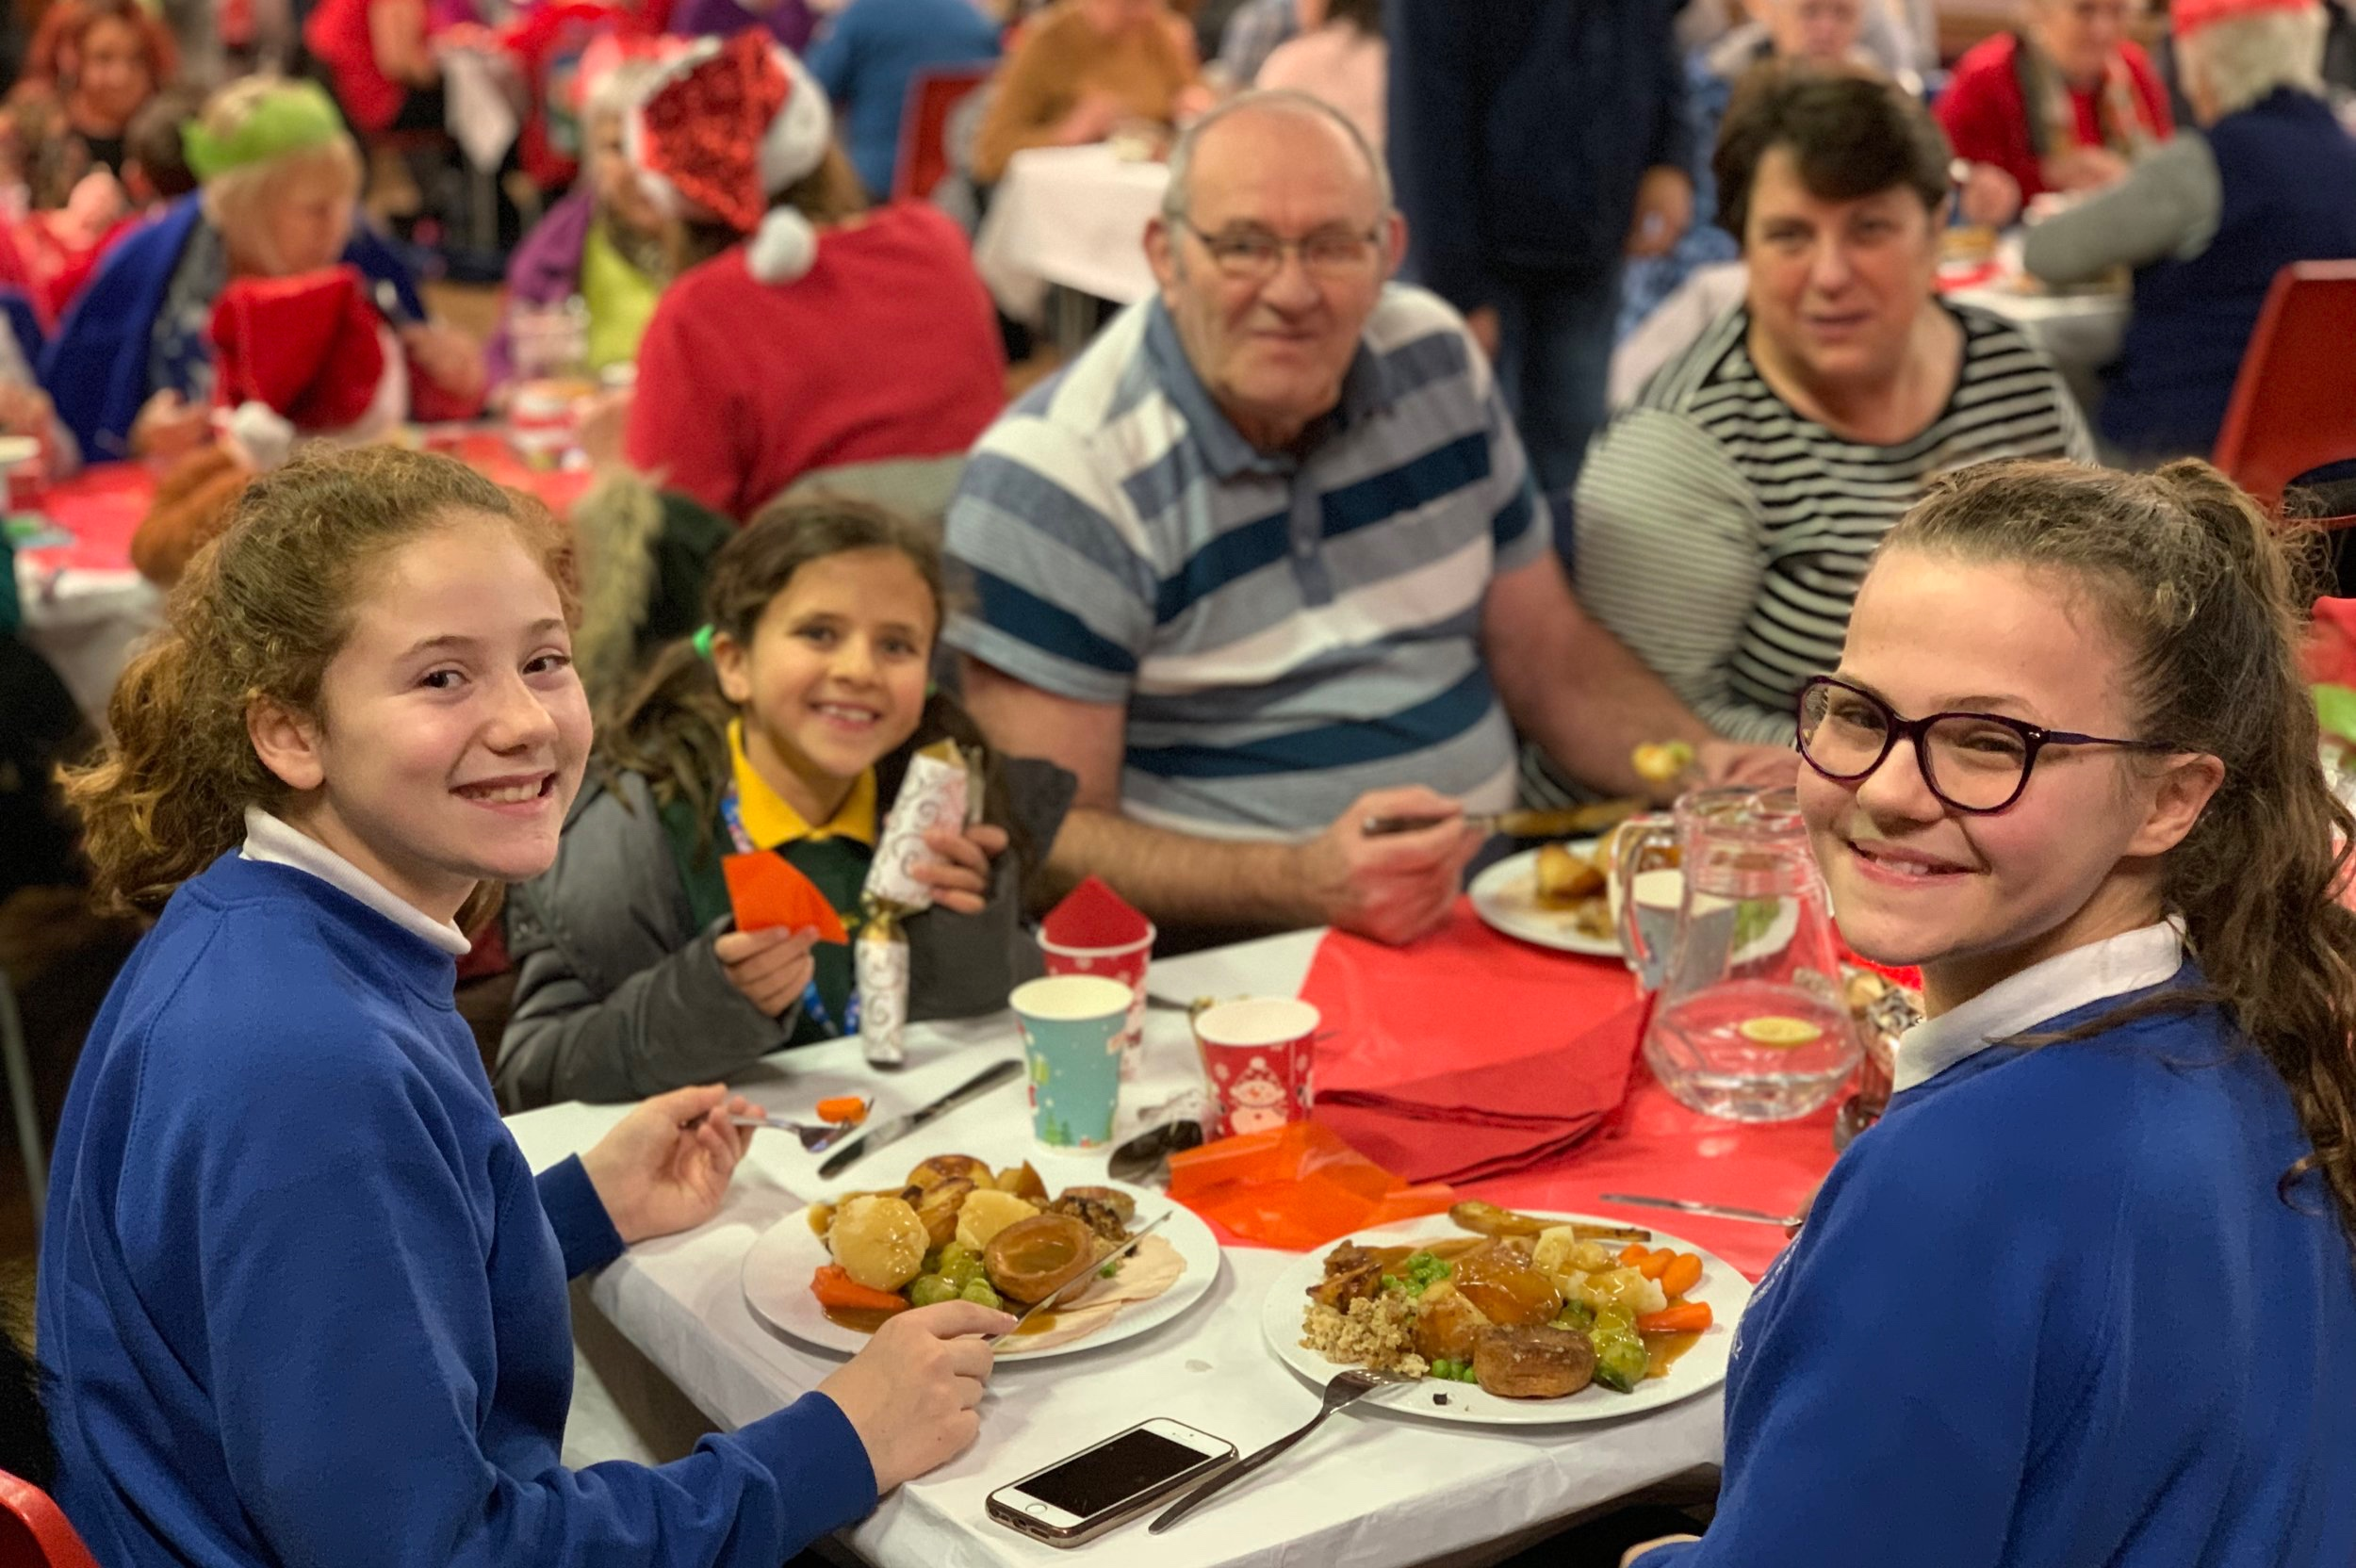 Food with Friends - Food with Friends is a free community meal. It aims to bring people of all ages, backgrounds and abilities together for a meal, so that people who might otherwise never have met, have the opportunity to get to know one another.